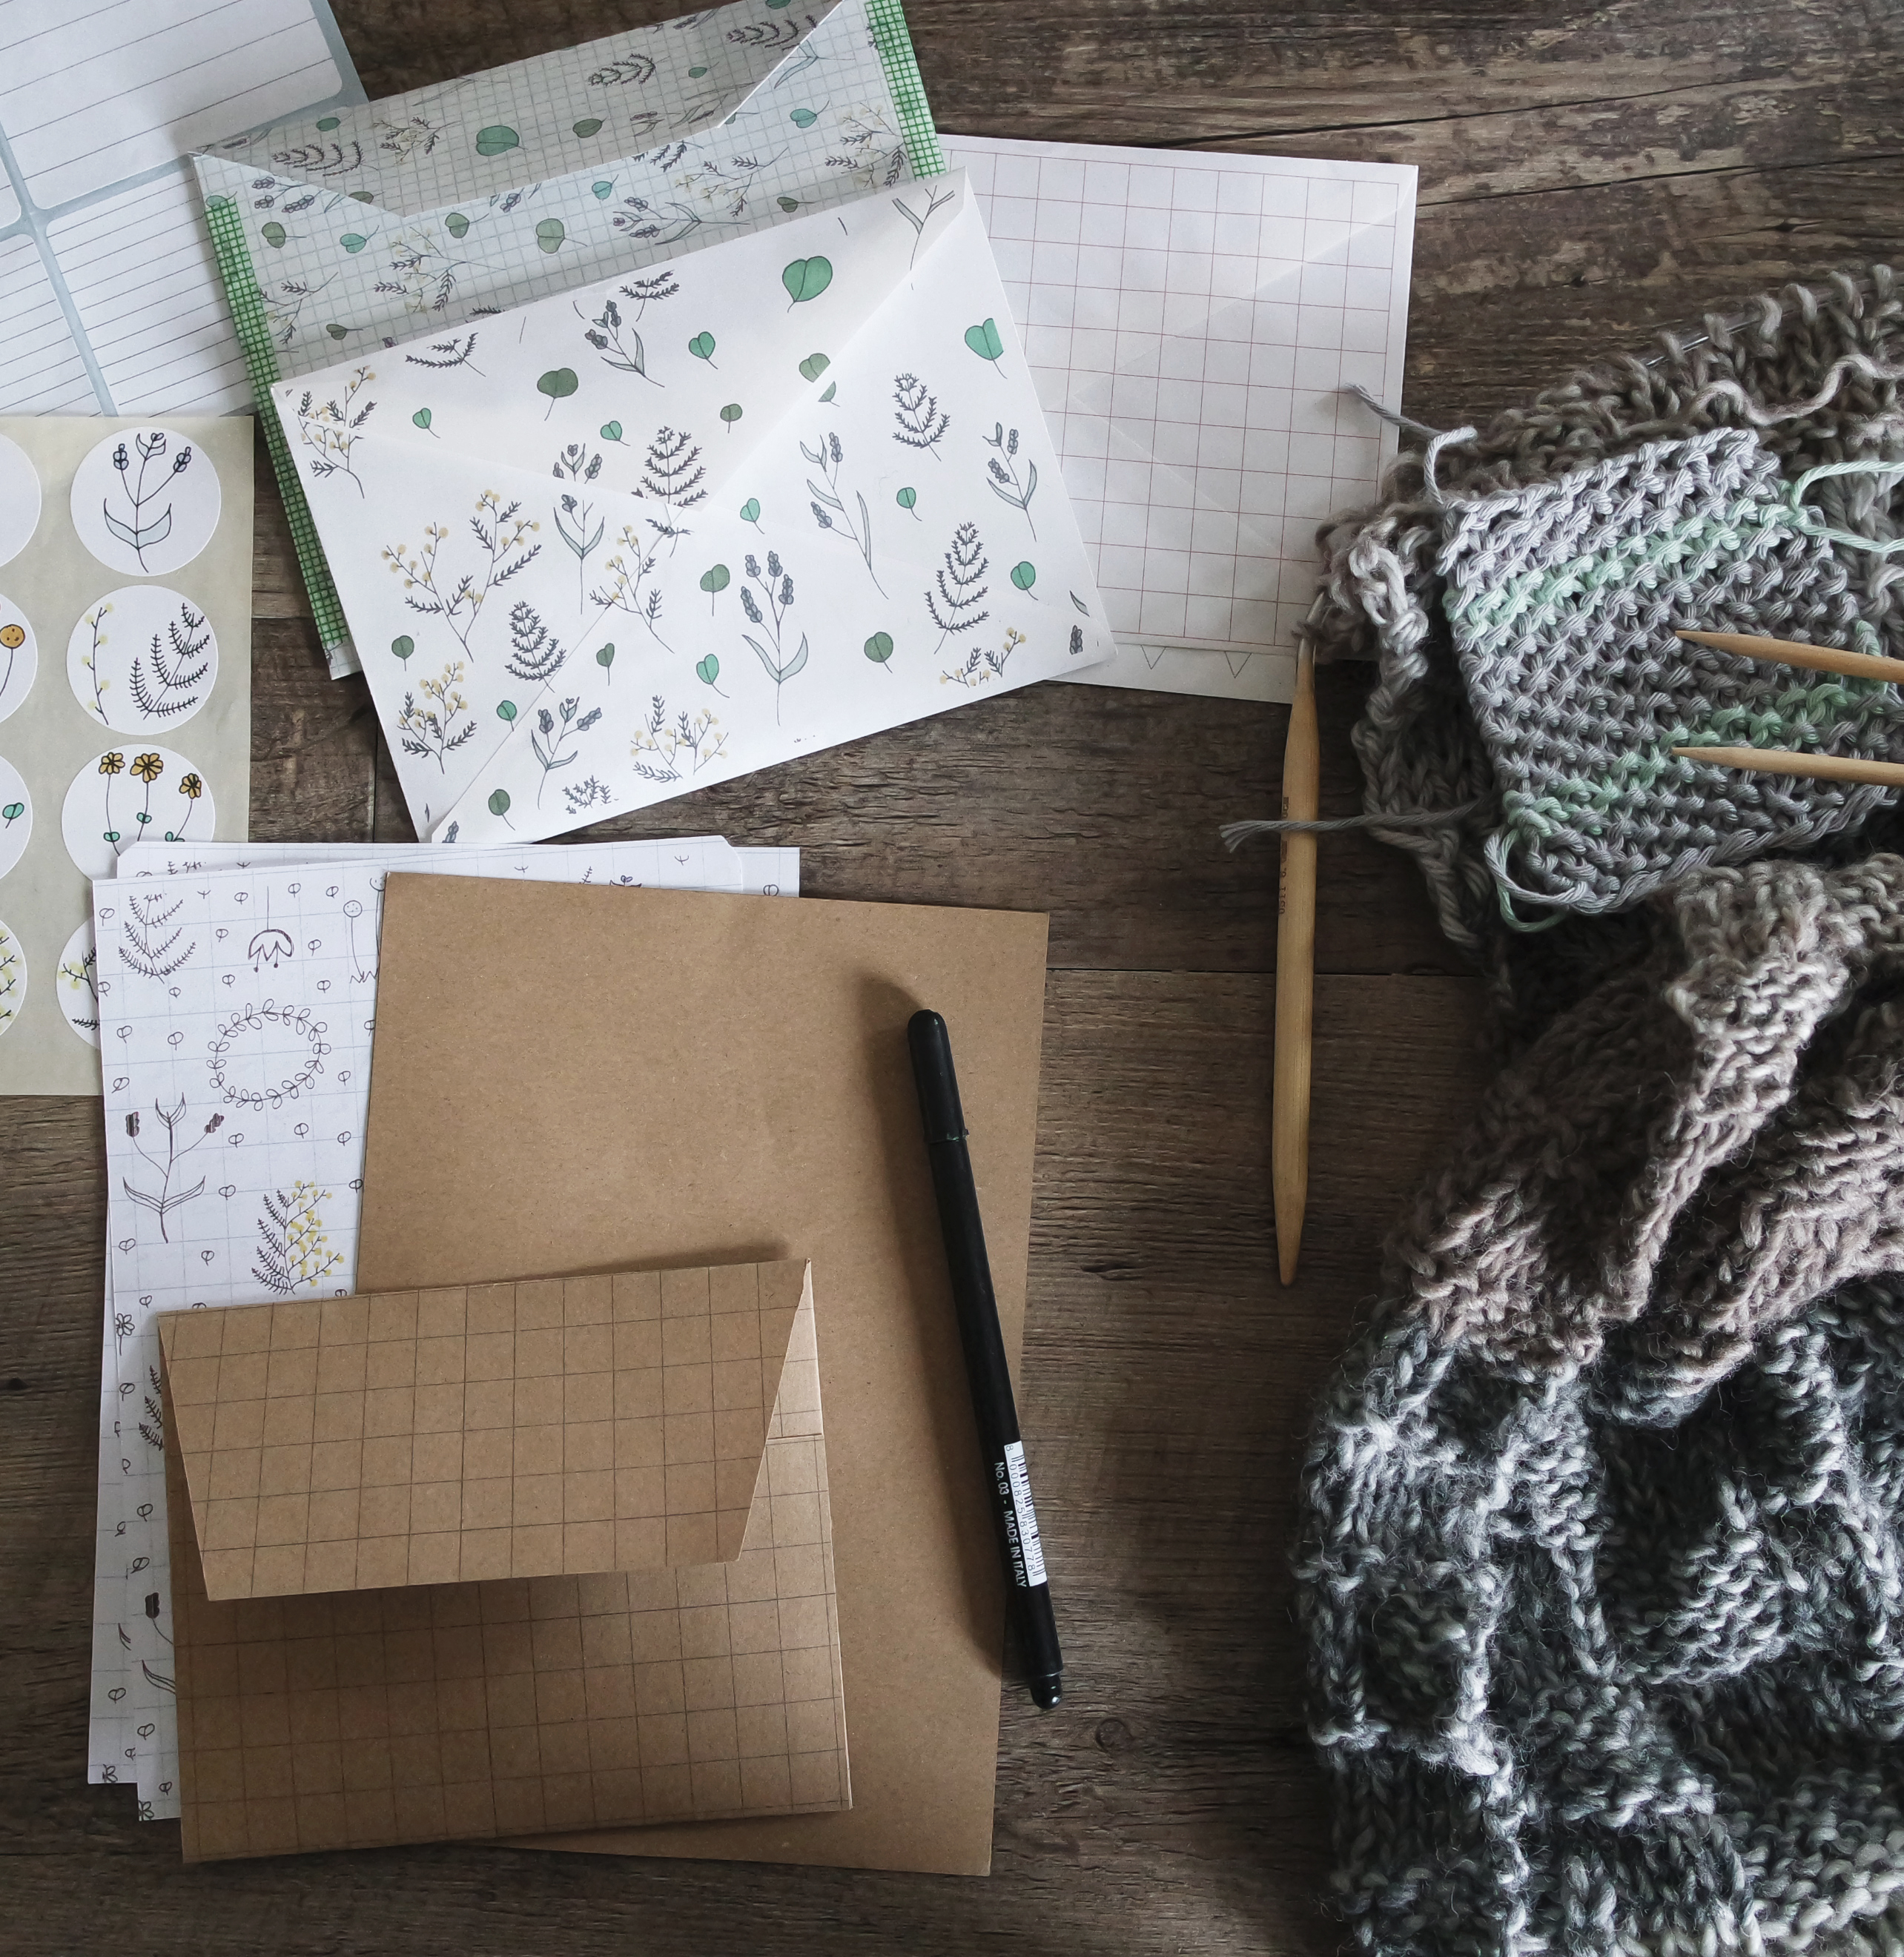 Knitwork and stationery